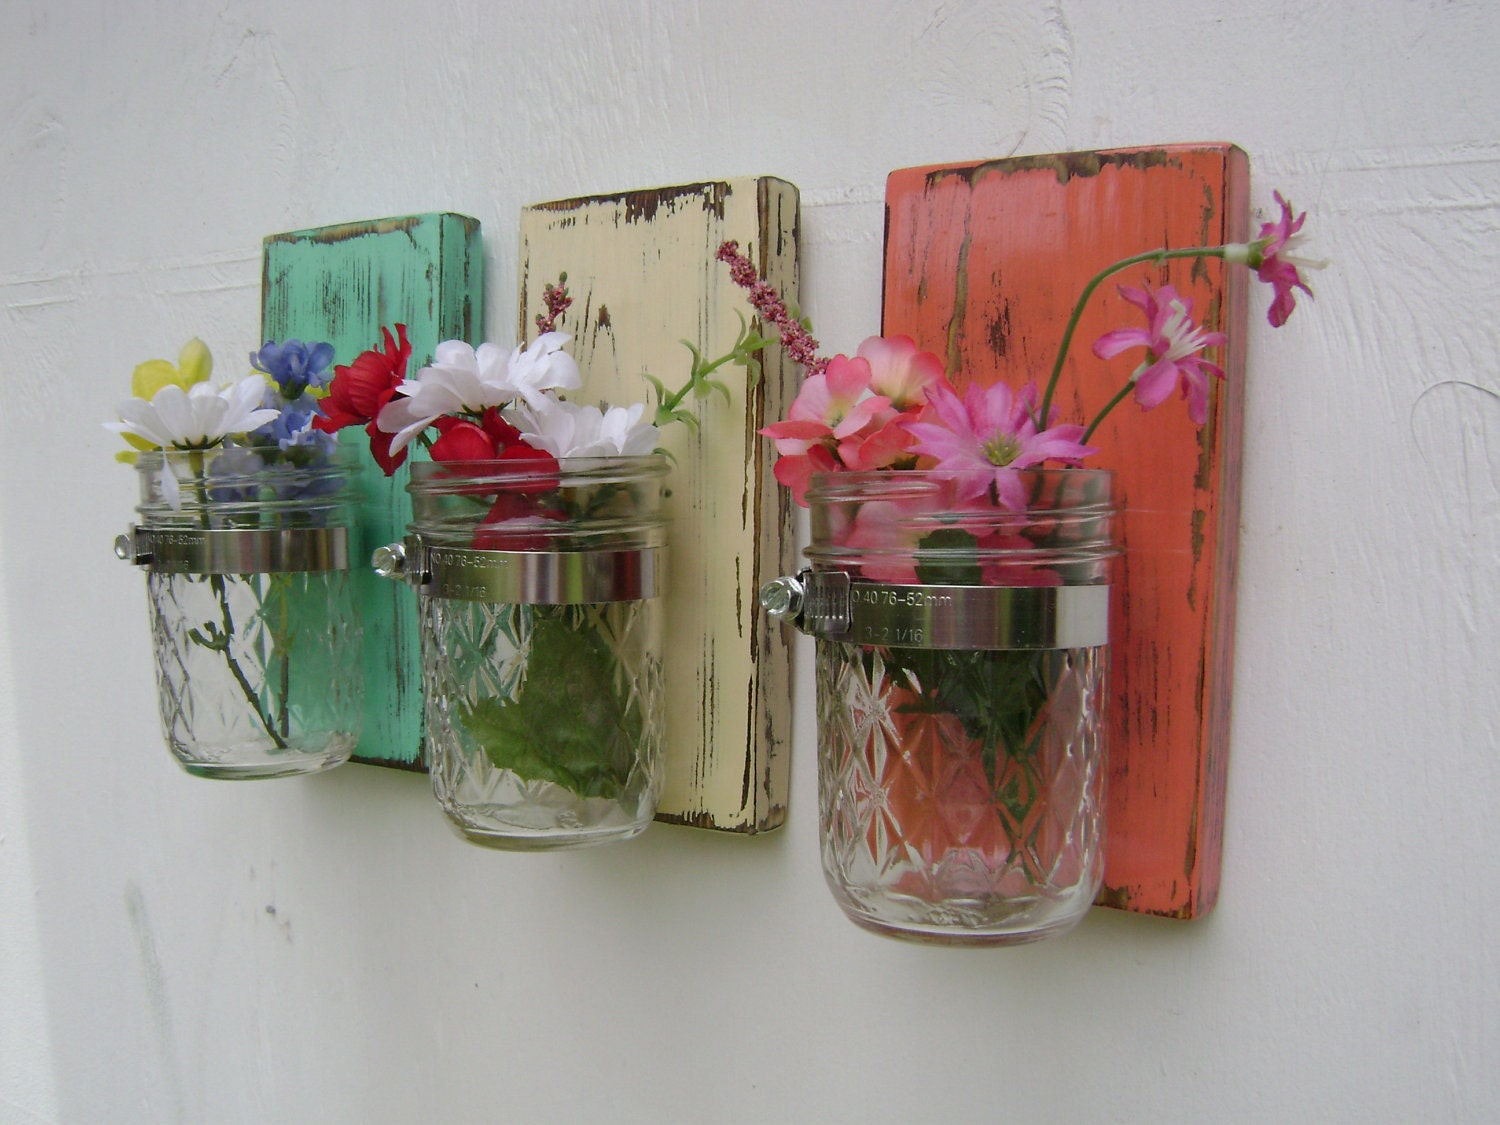 Wall Sconces Shabby Chic : wall sconce shabby chic rustic wooden vases by UncleJohnsCabin